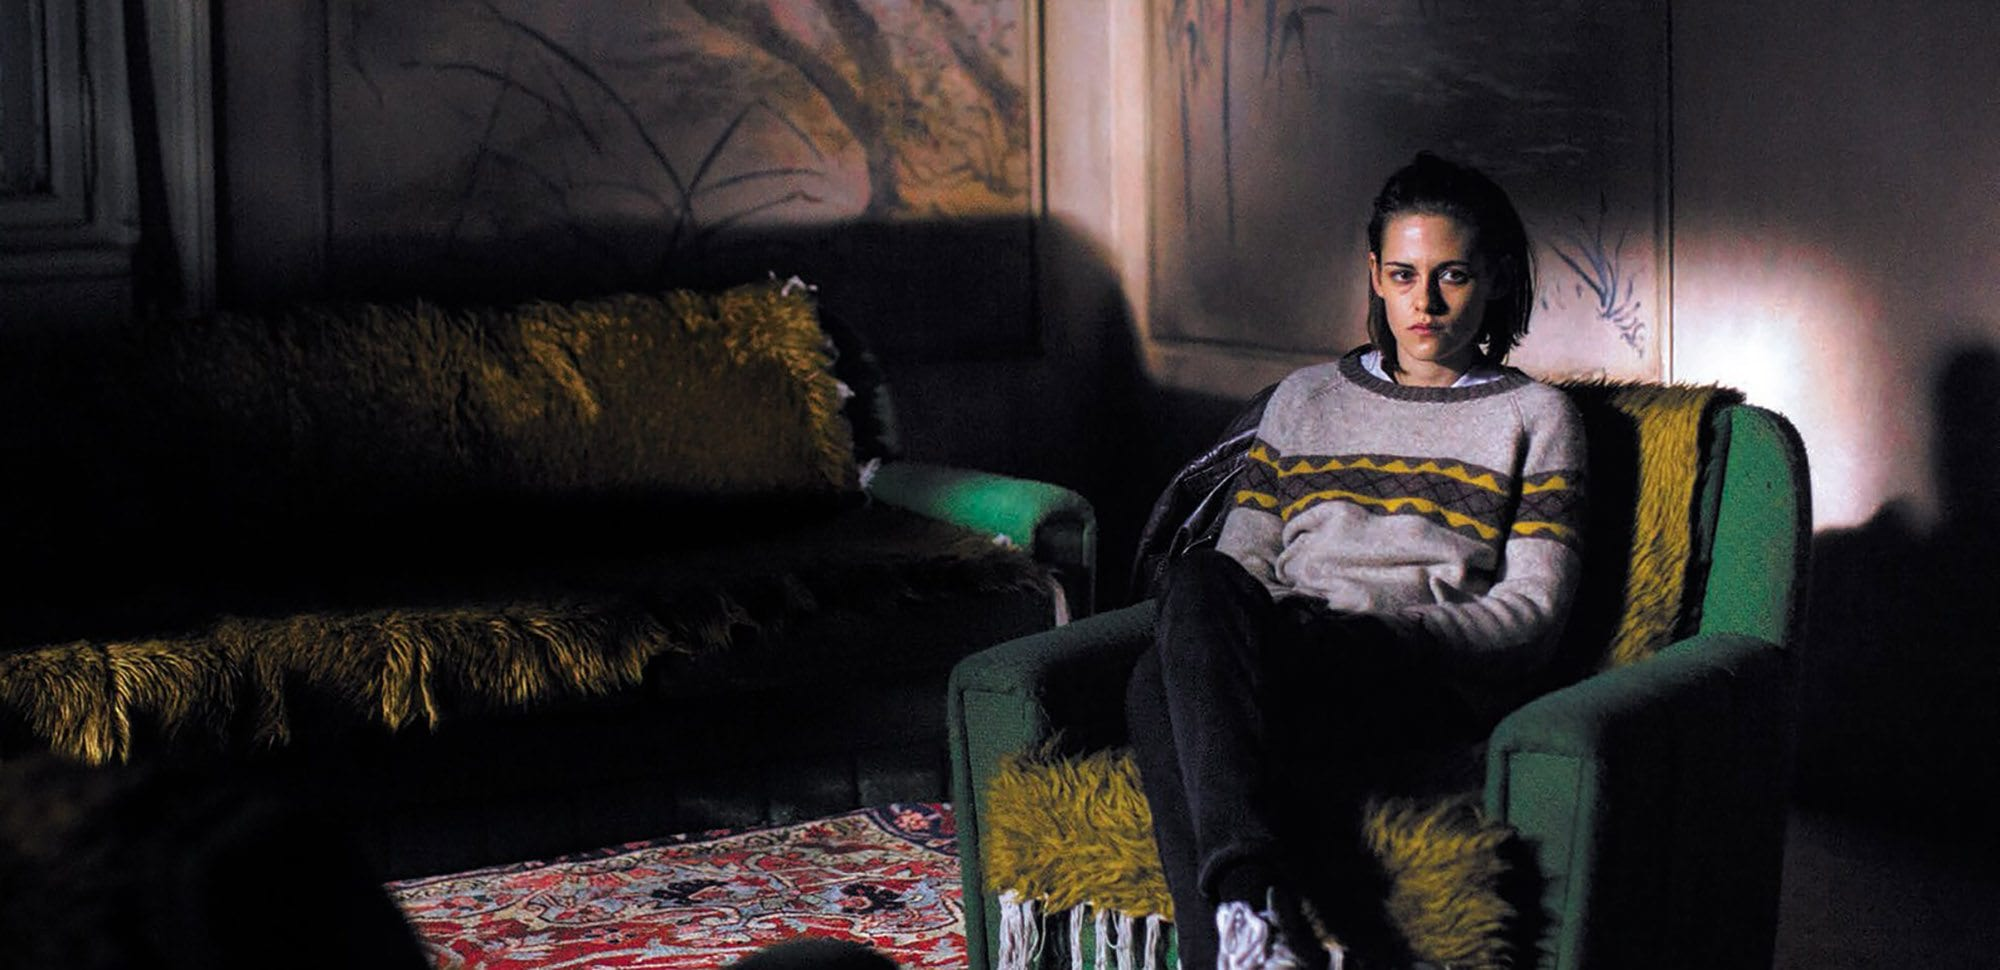 It's been a couple years since 'Personal Shopper' came out and we're still not over it. Here are the reasons why this mysterious ghost thriller is the best.